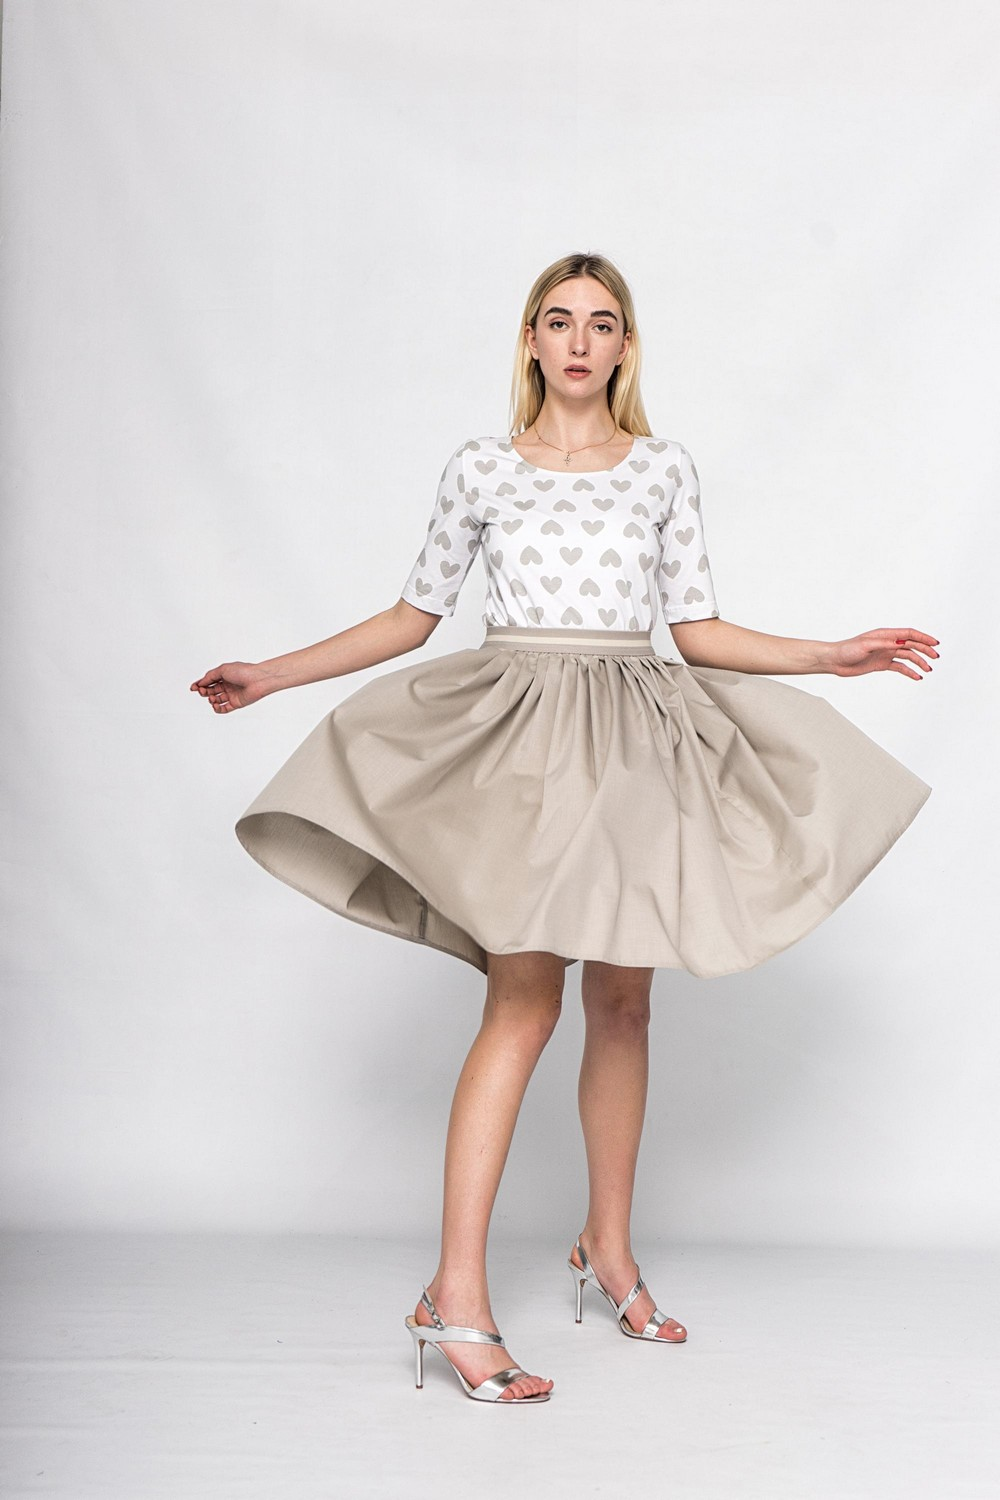 Buy Classic women grey cotton skirt, Casual retro ladies skirt, Fluffy skirt for summer